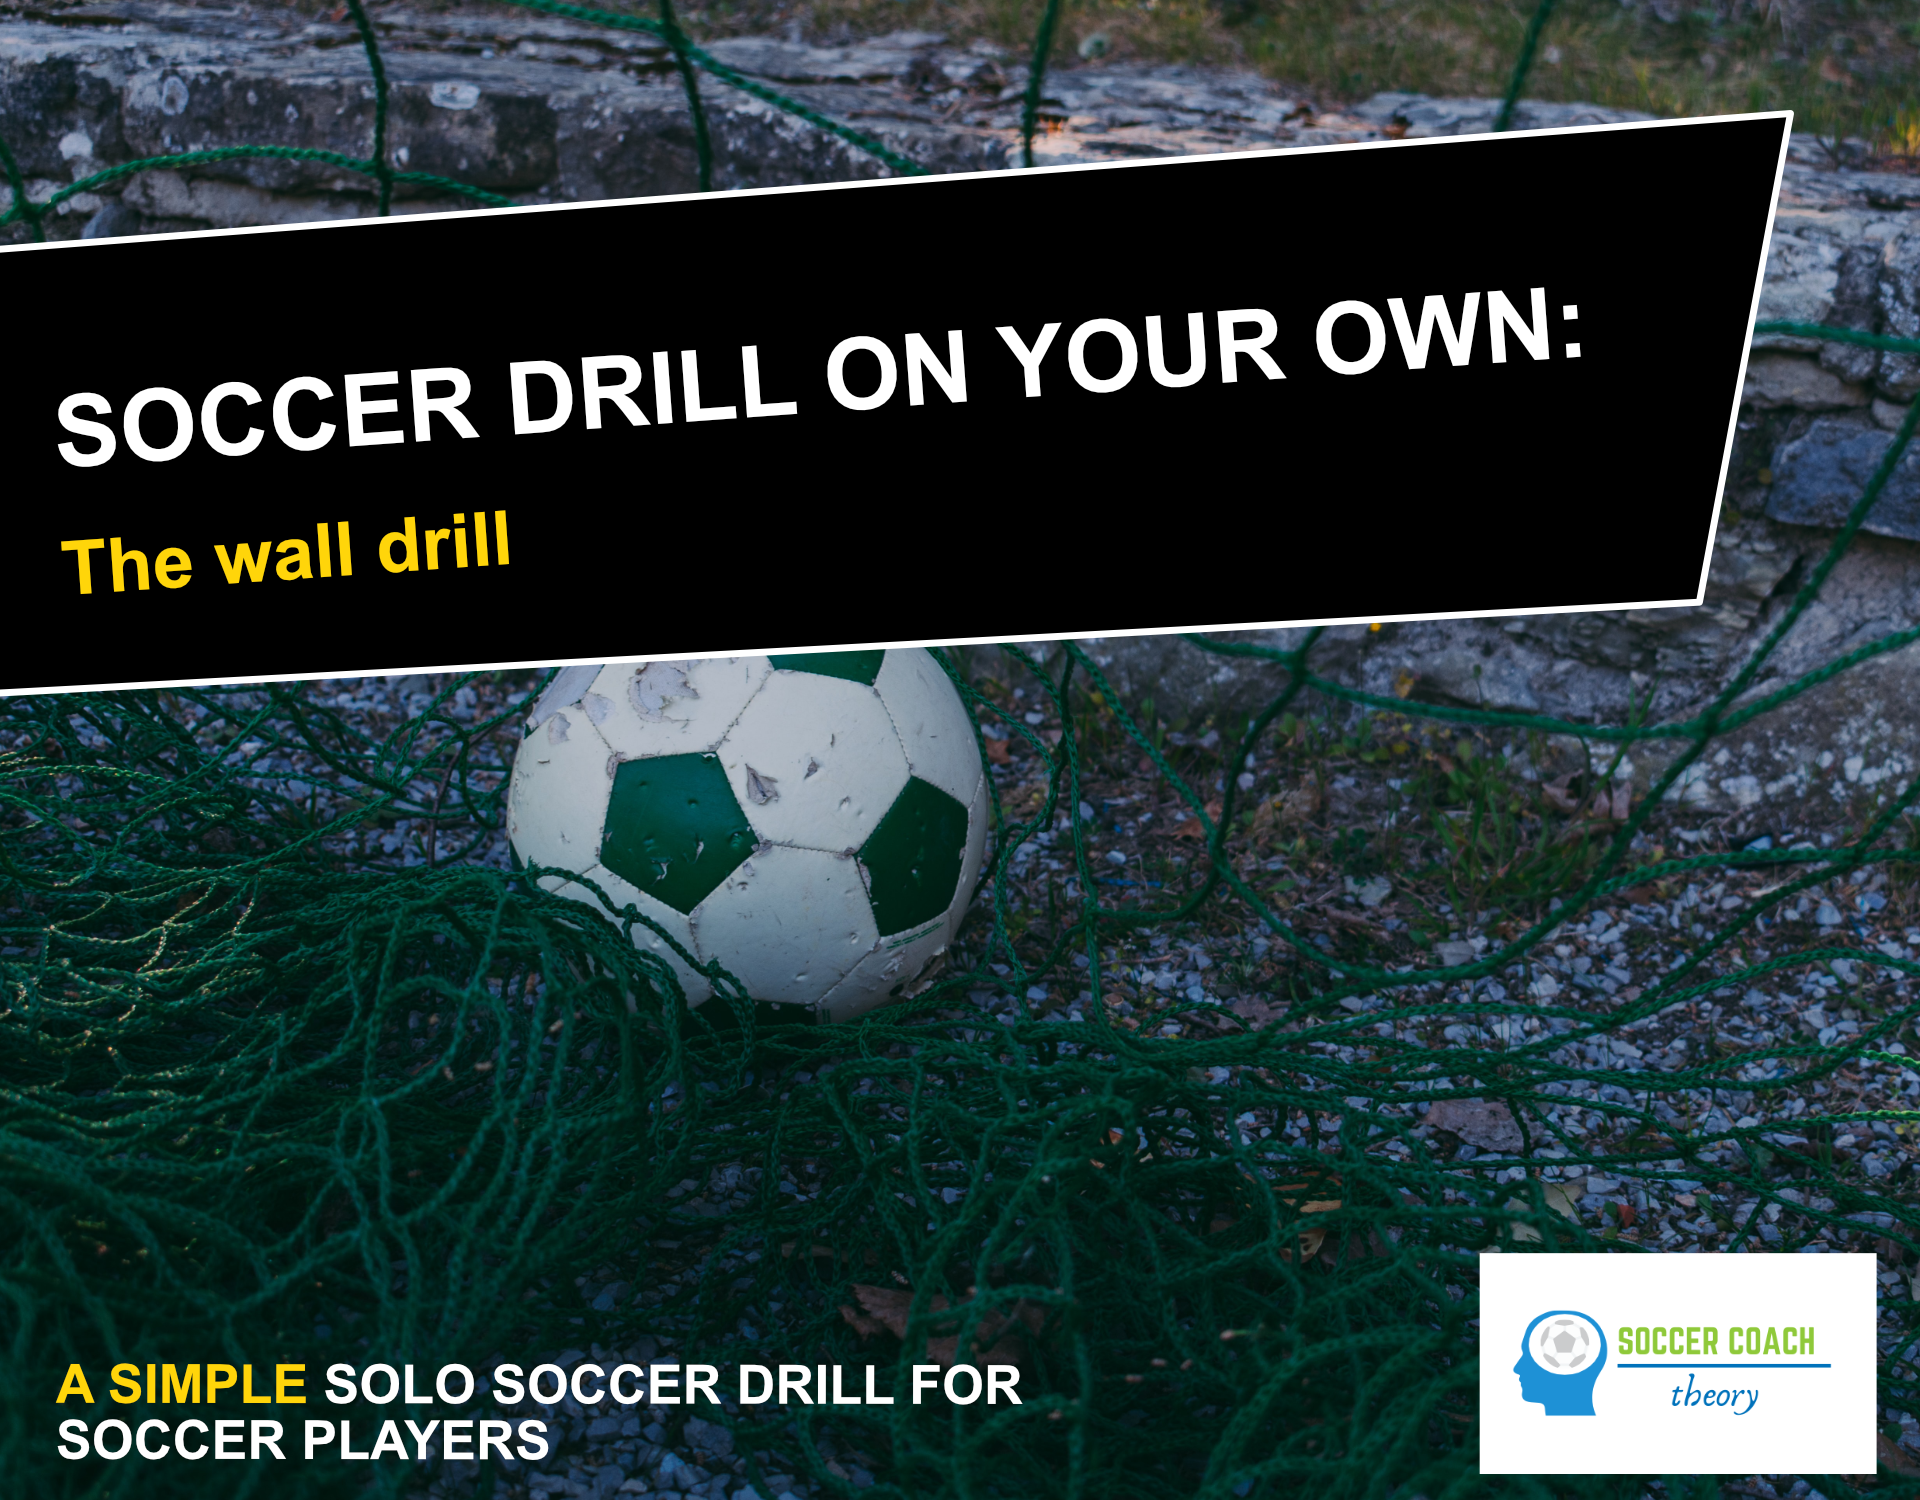 Soccer drill on your own - the wall drill